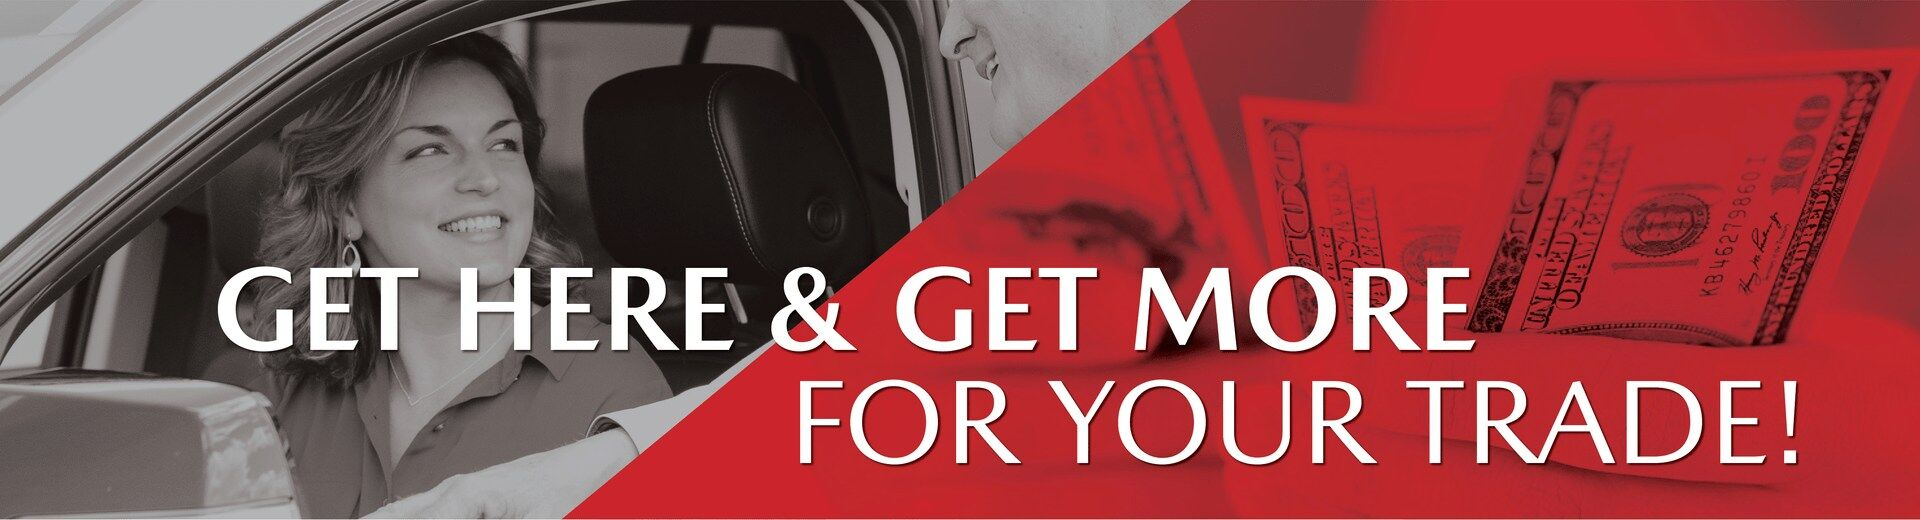 Get more for your trade Holiday Mazda